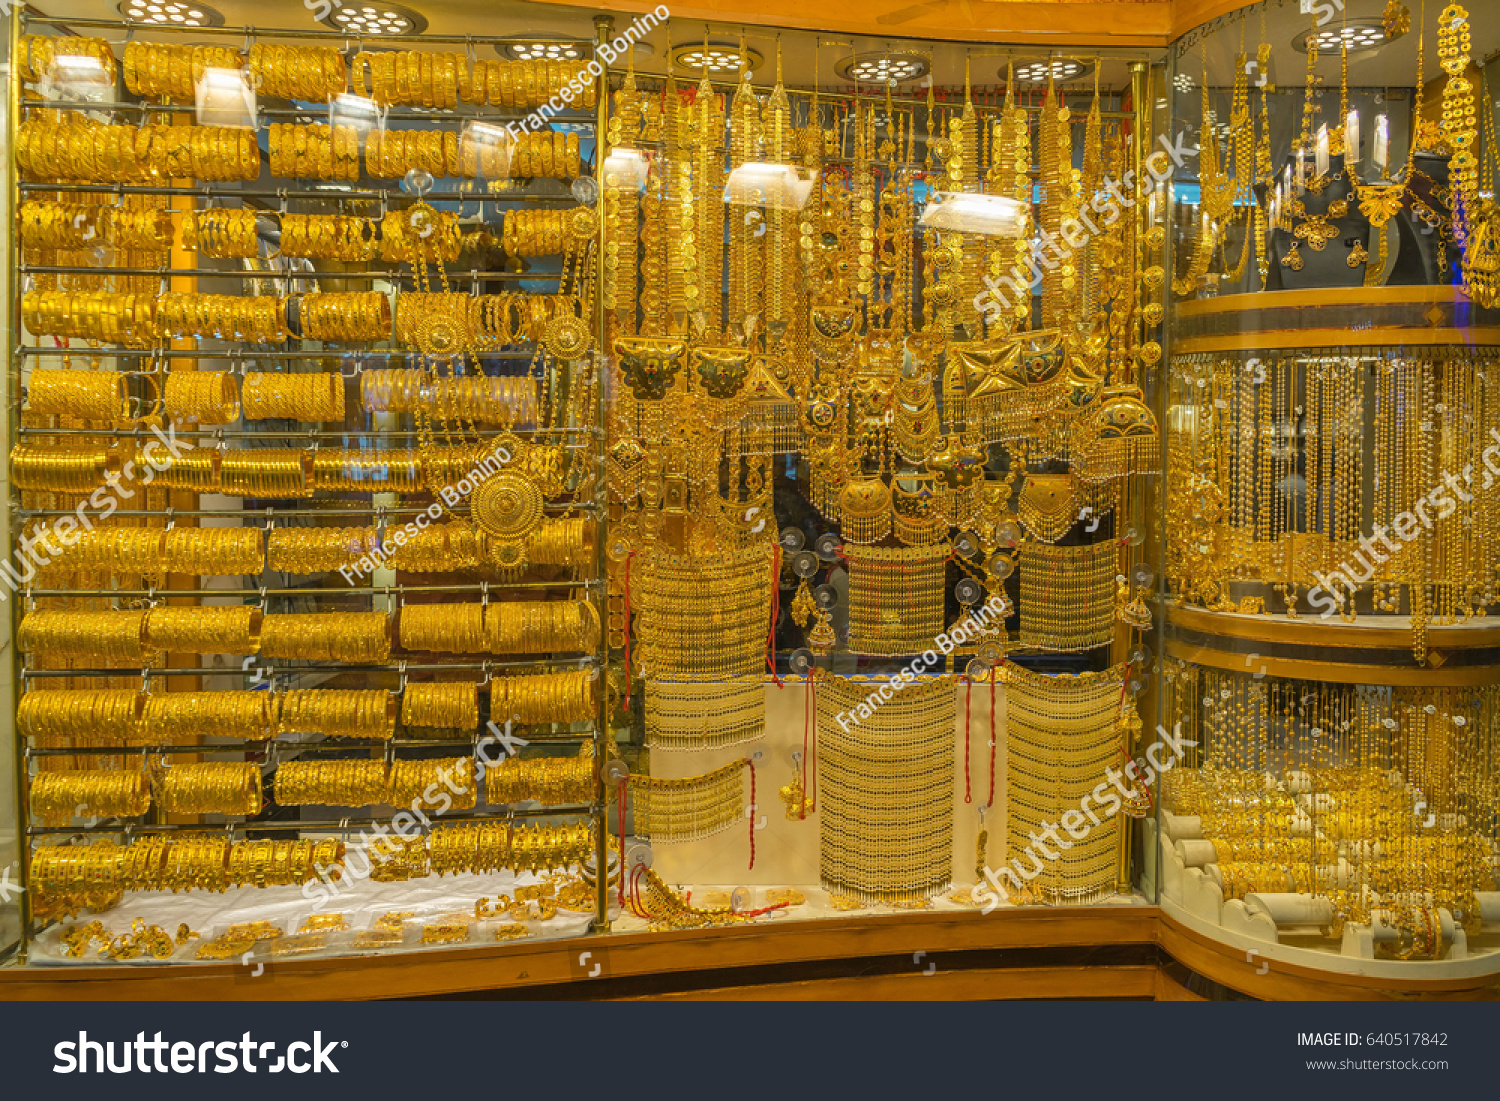 window dubai arab city gold emirates photo asia stock uae showcase display middle east jewelry united souq jewellery